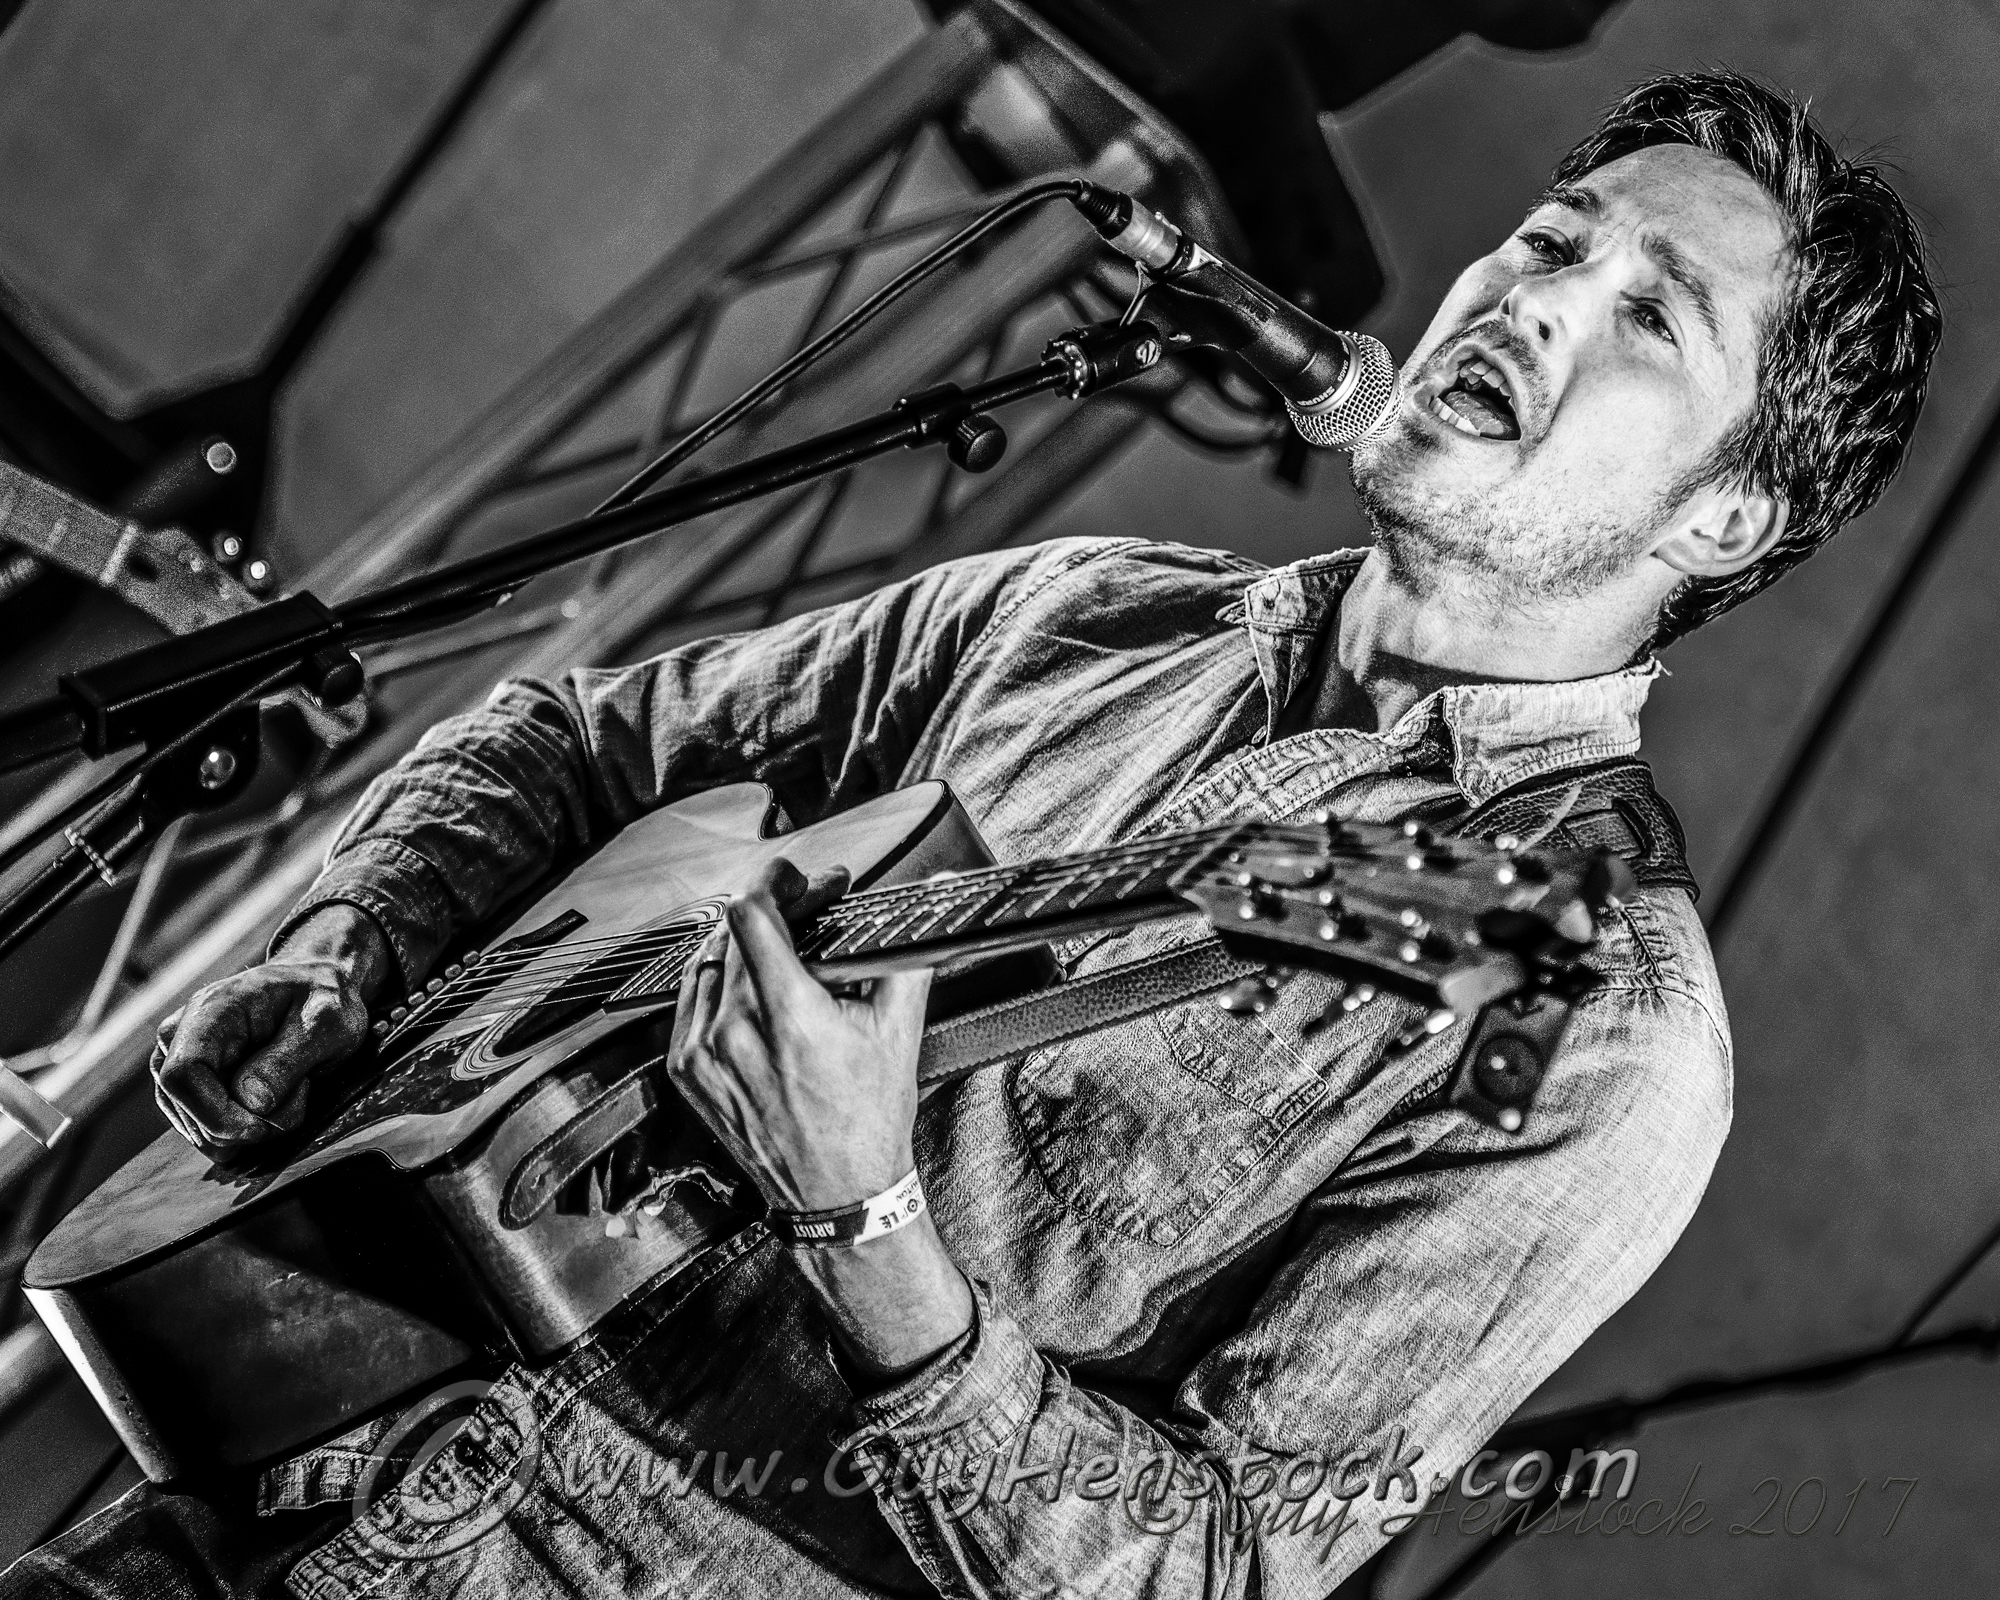 Live music  photography link